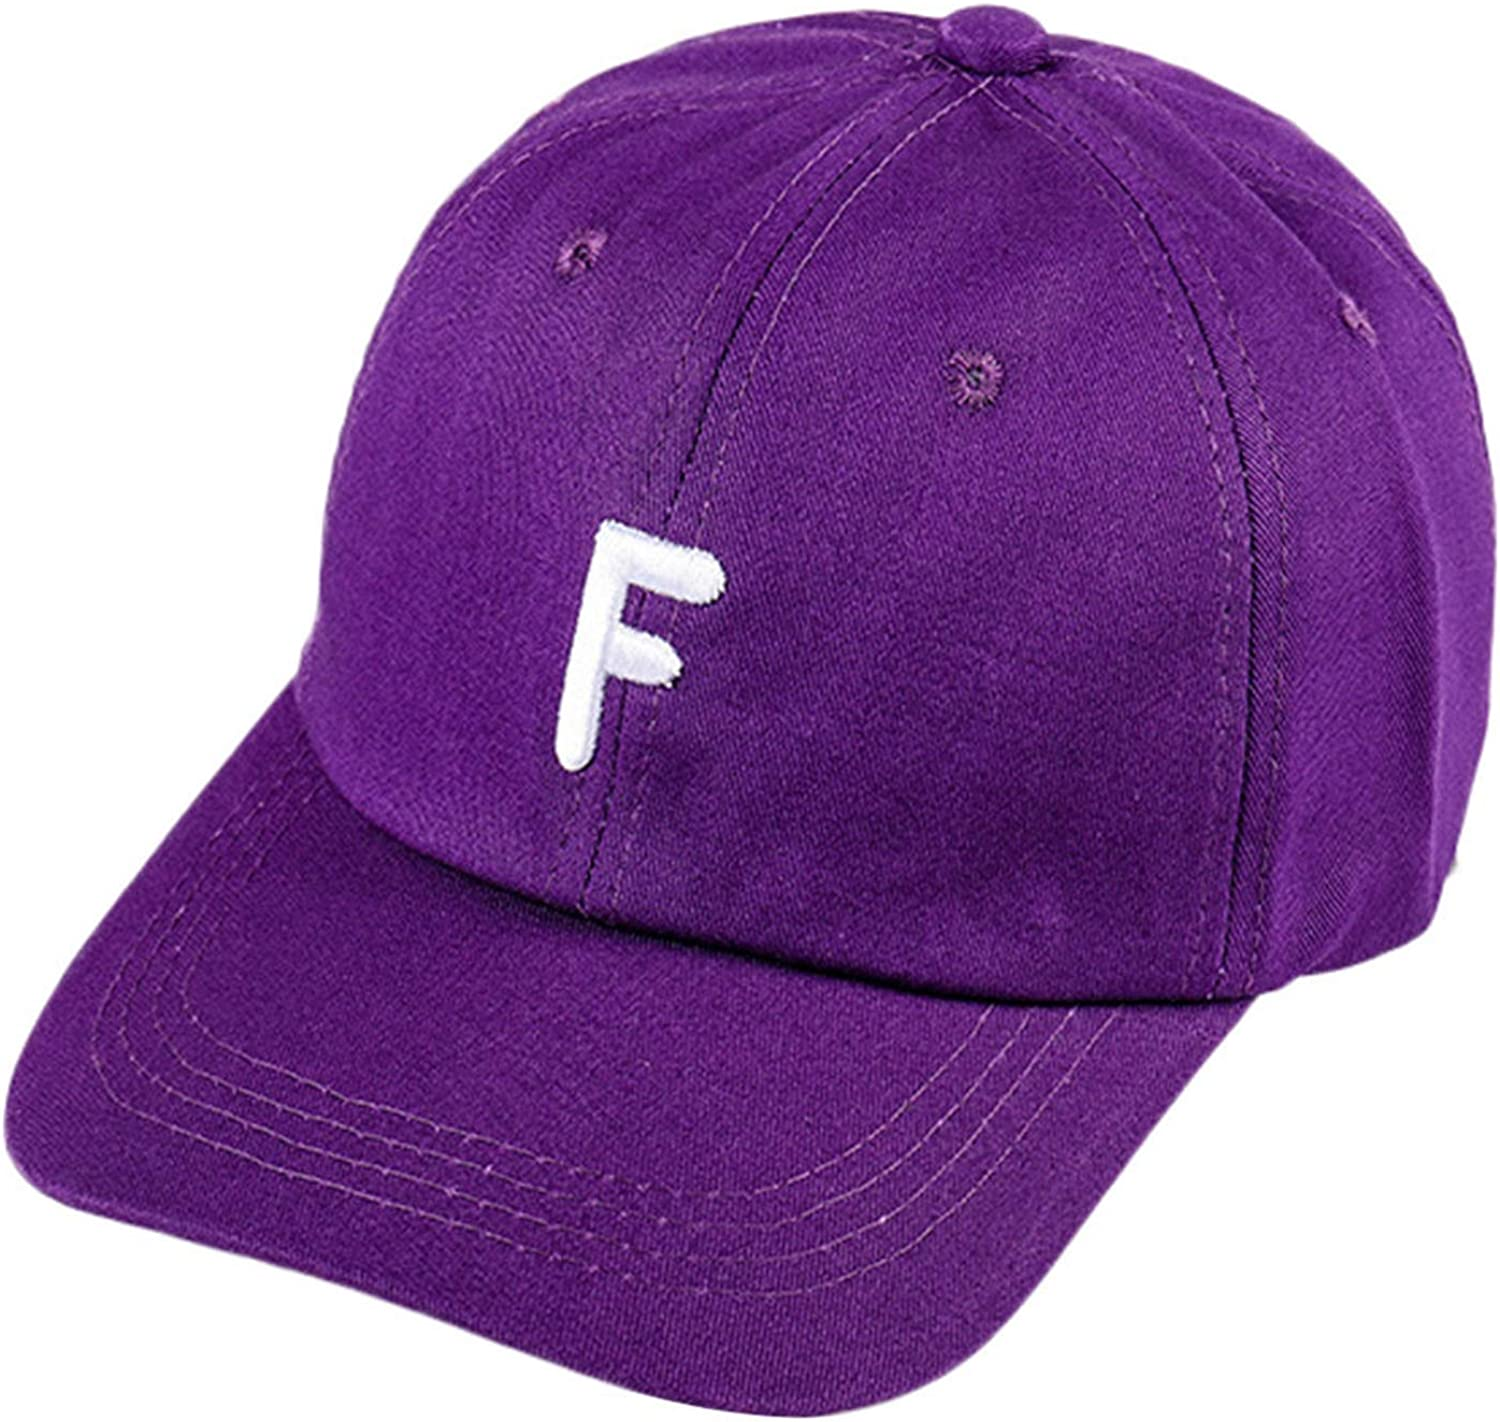 Unisex Baseball Hat Vintage Letter F Twill Cotton Baseball Cap Vintage Adjustable Dad Hat